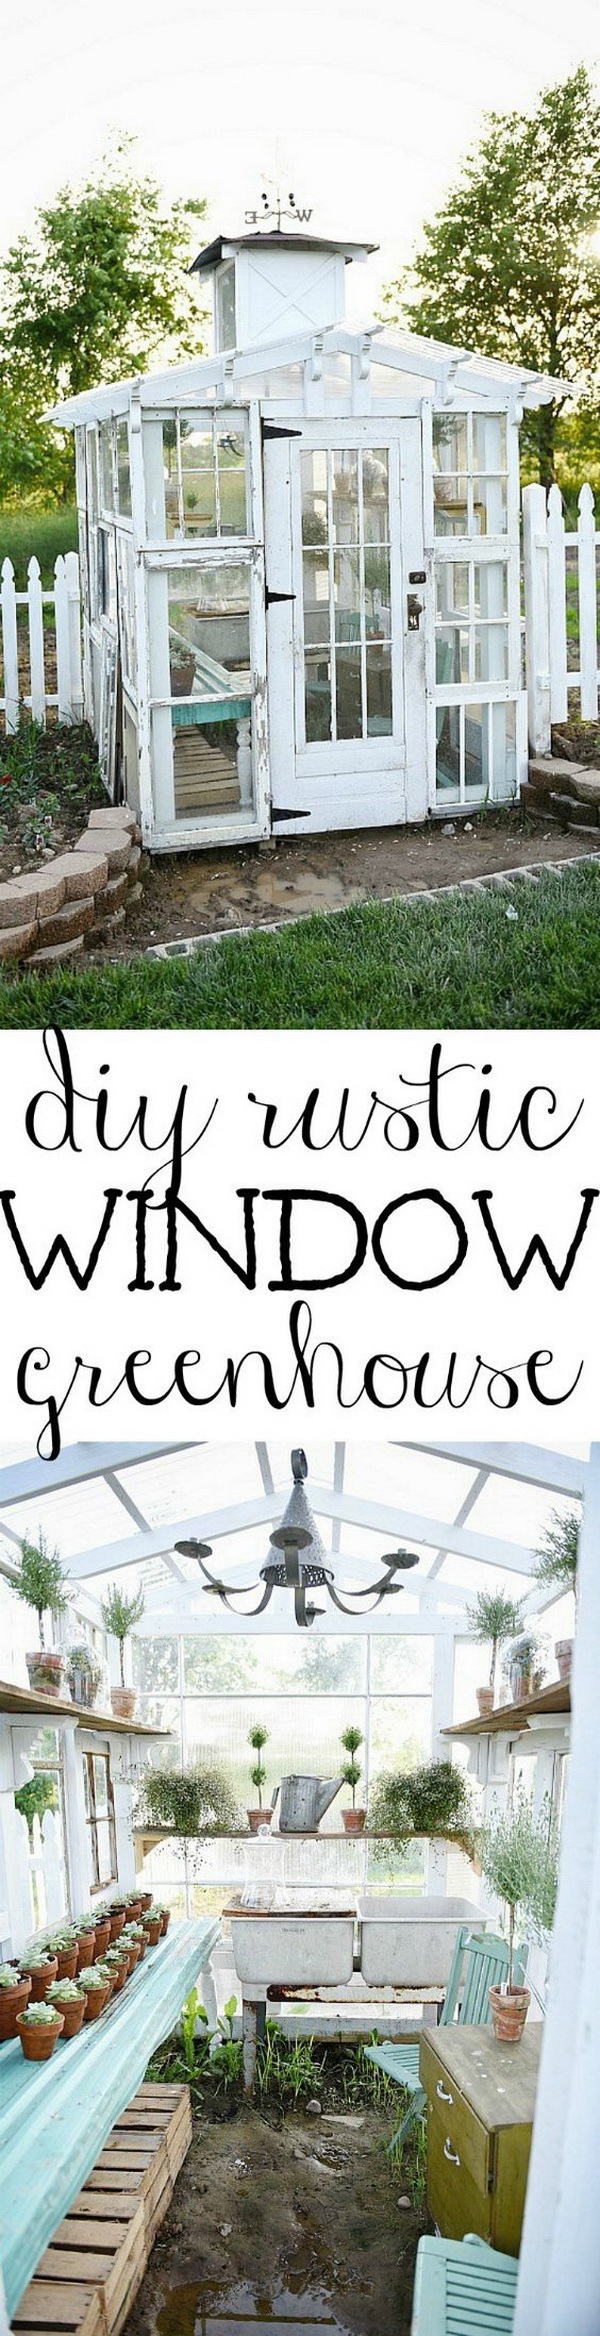 DIY Rustic Window Greenhouse.